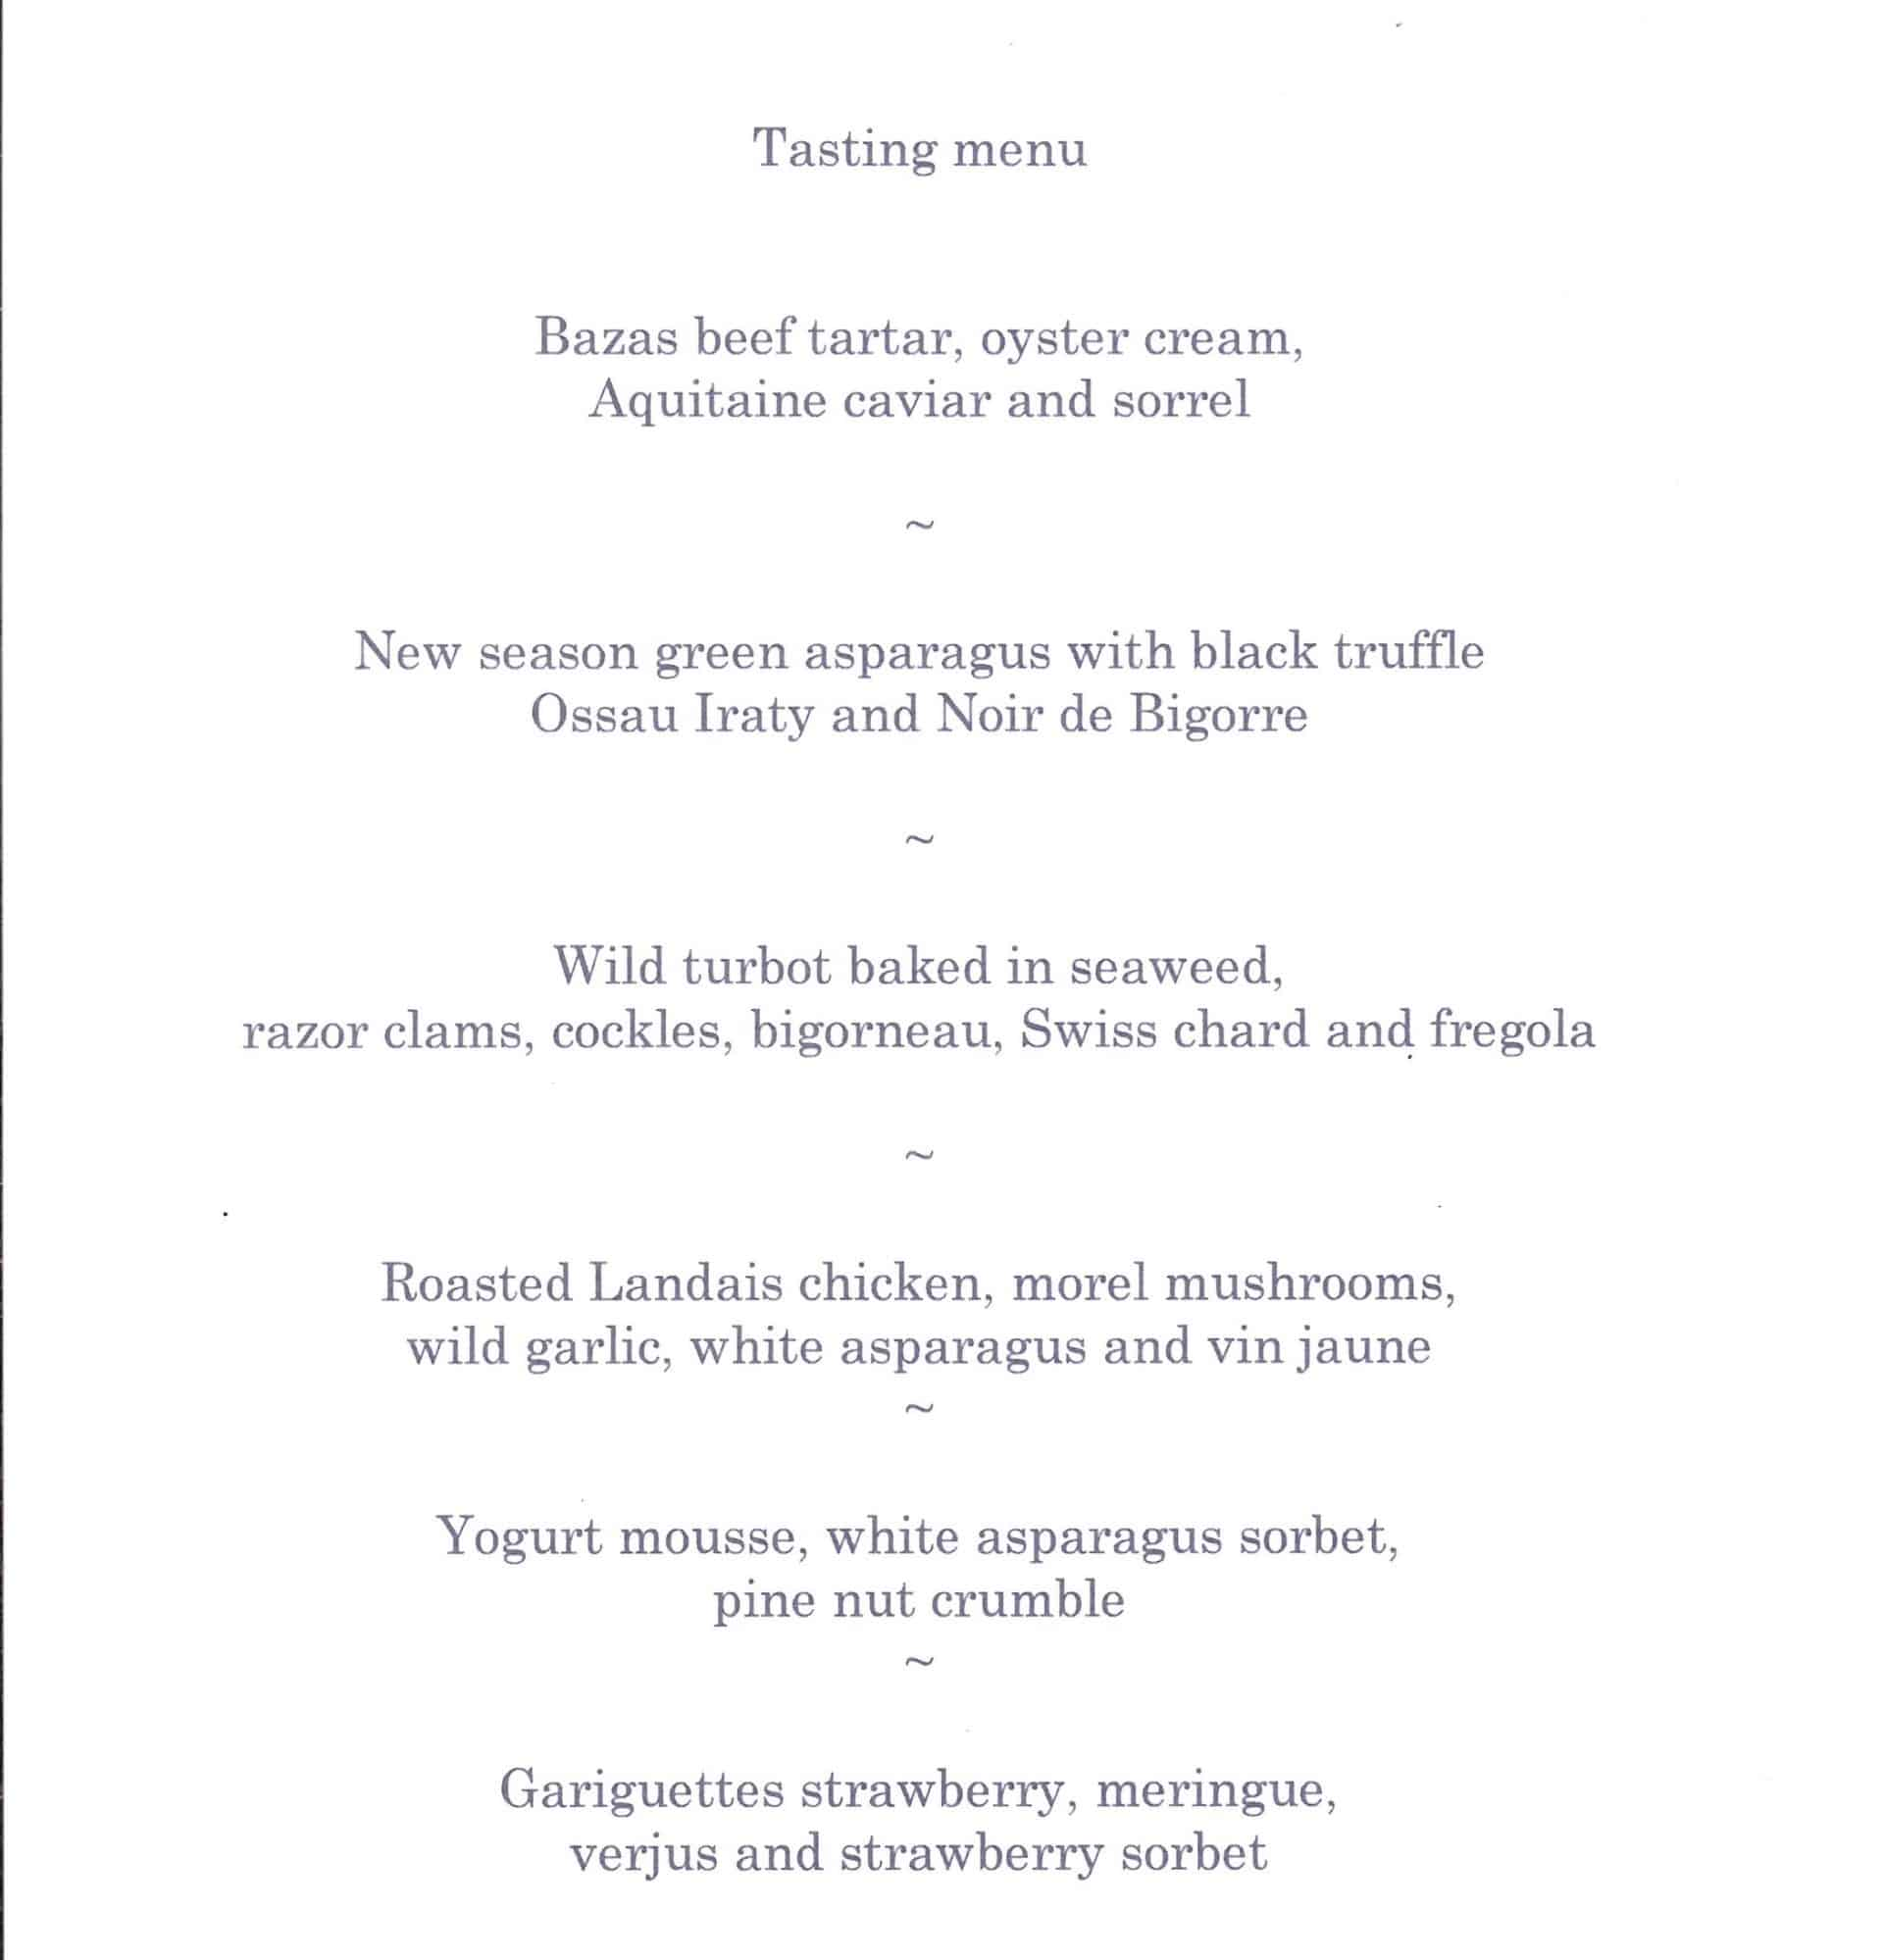 Tasting menu at Le Pressoir d'Argent